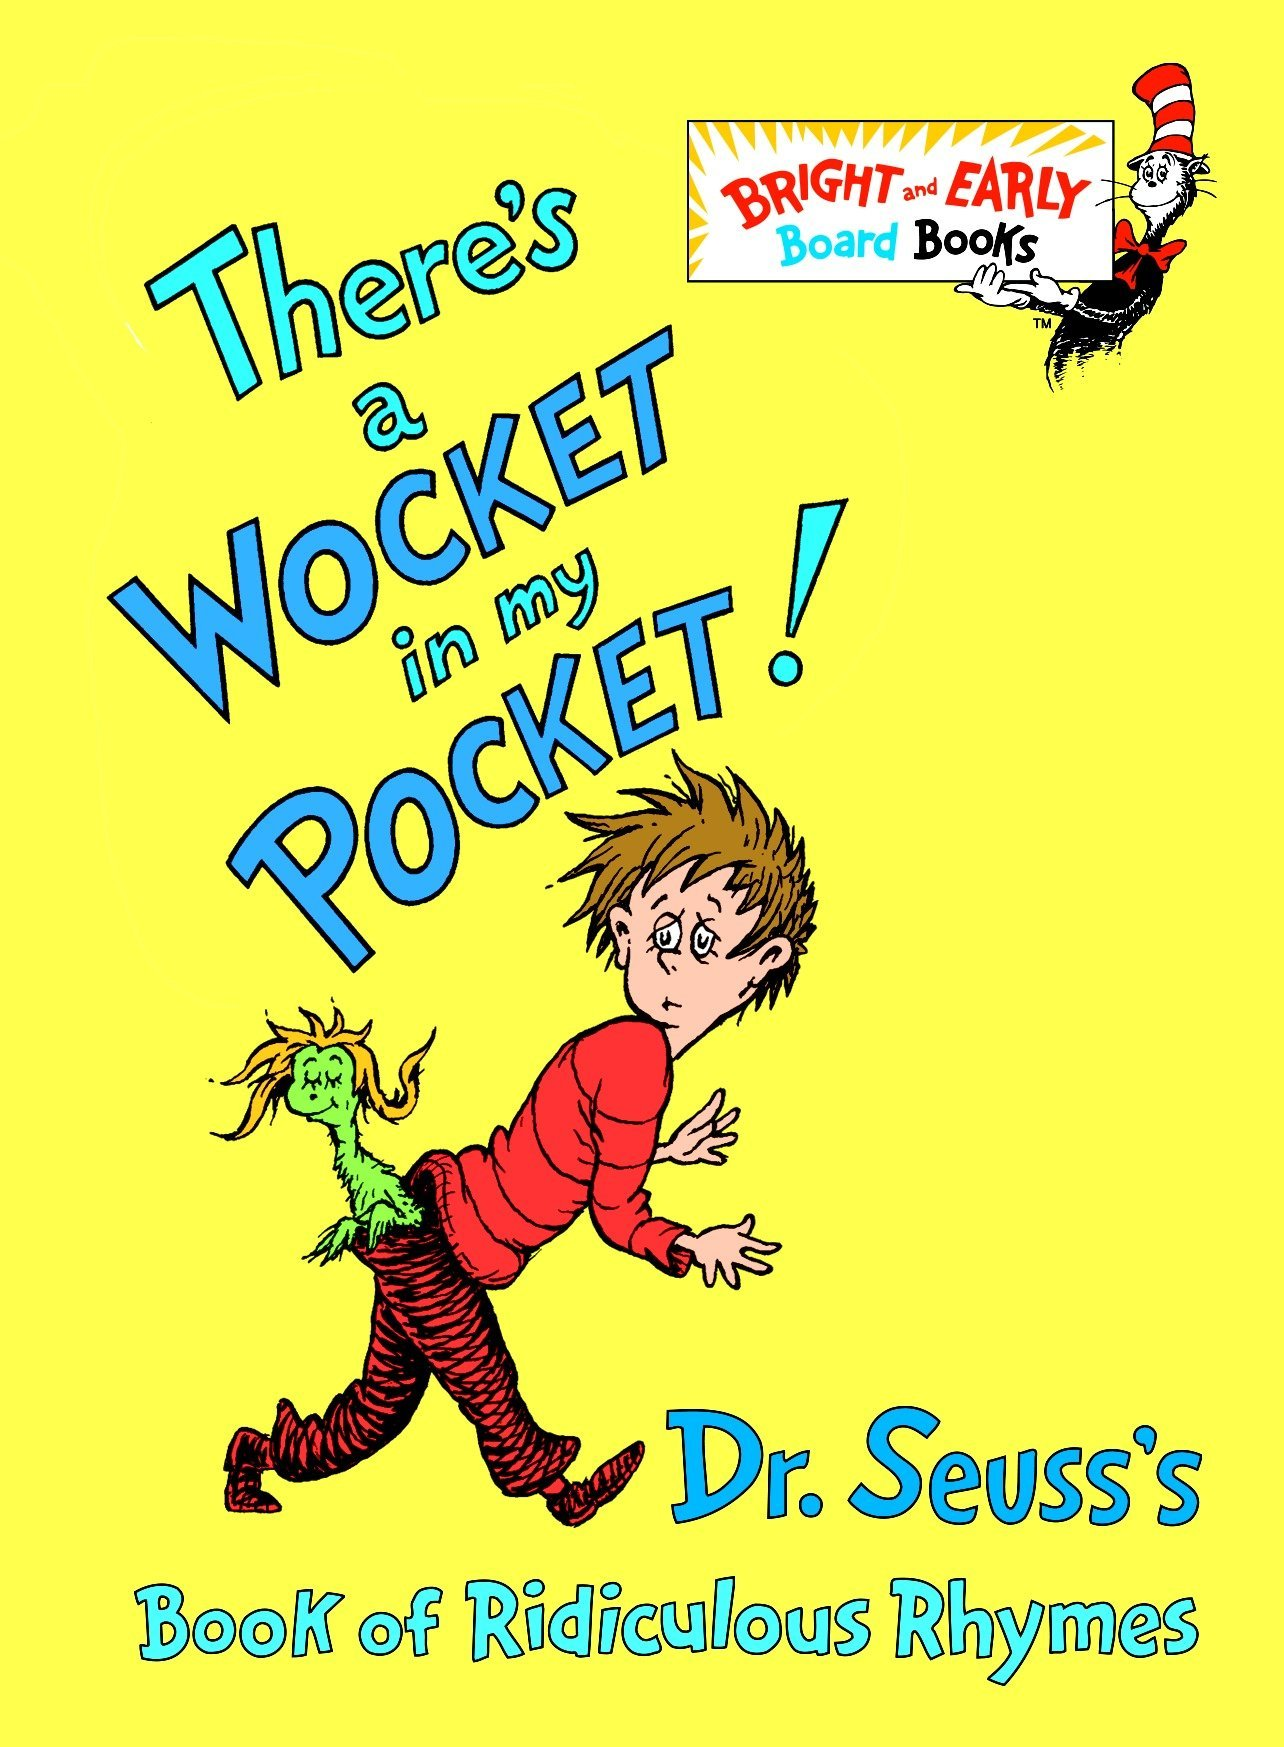 Amazon.com: There's a Wocket in My Pocket! (Dr. Seuss's Book of Ridiculous  Rhymes) (9780679882831): Dr. Seuss: Books